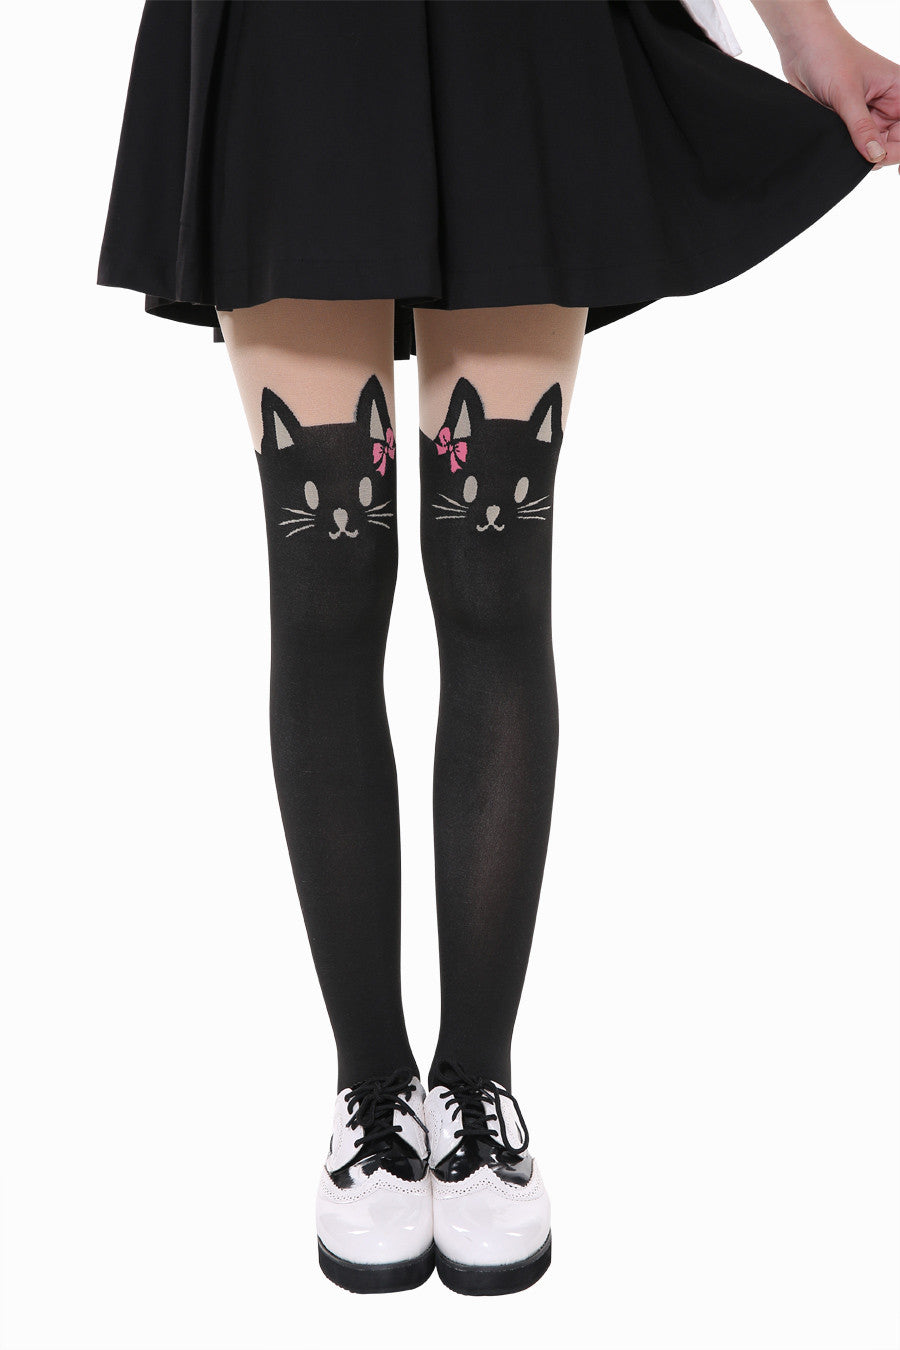 Cat Wear Pink Bow Tights